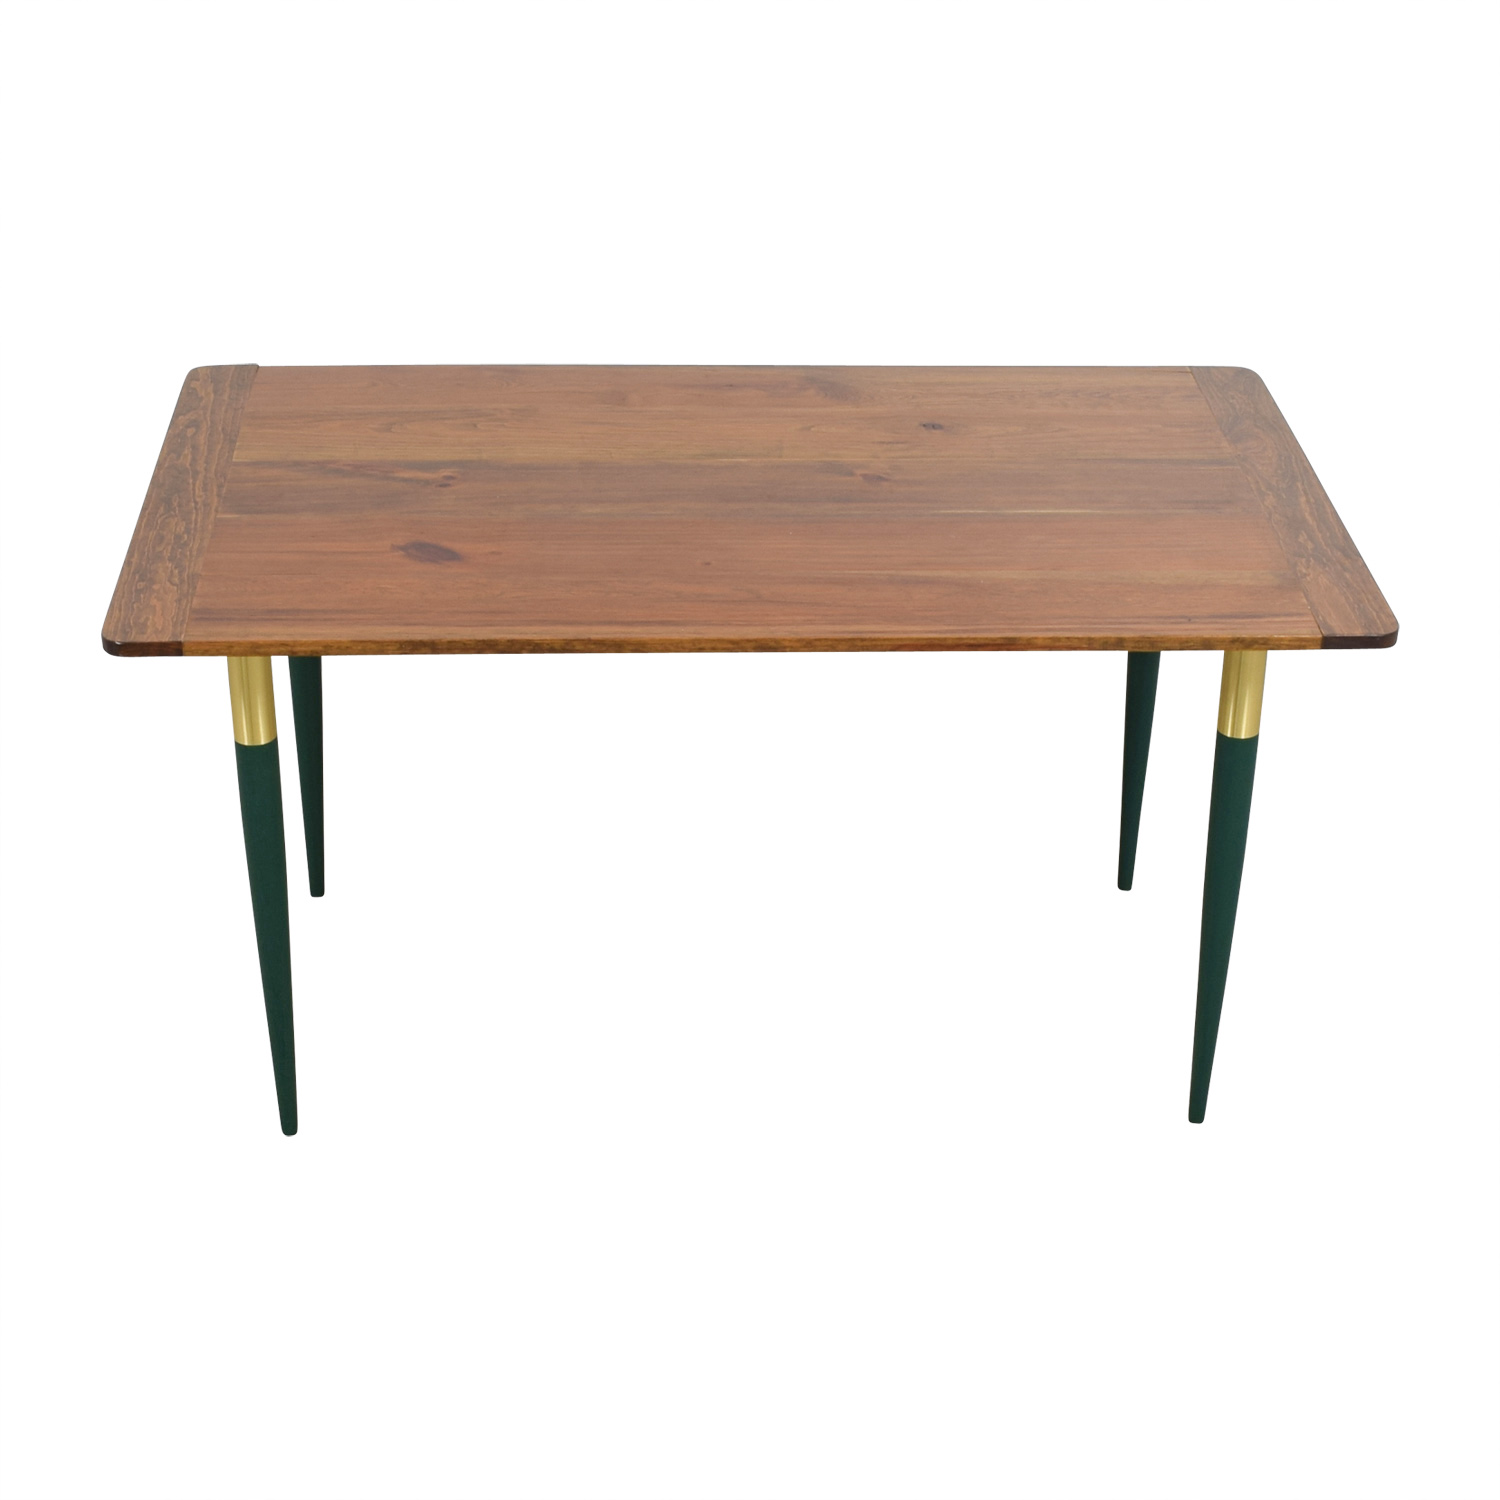 Custom Rustic Wood with Green Leg Table